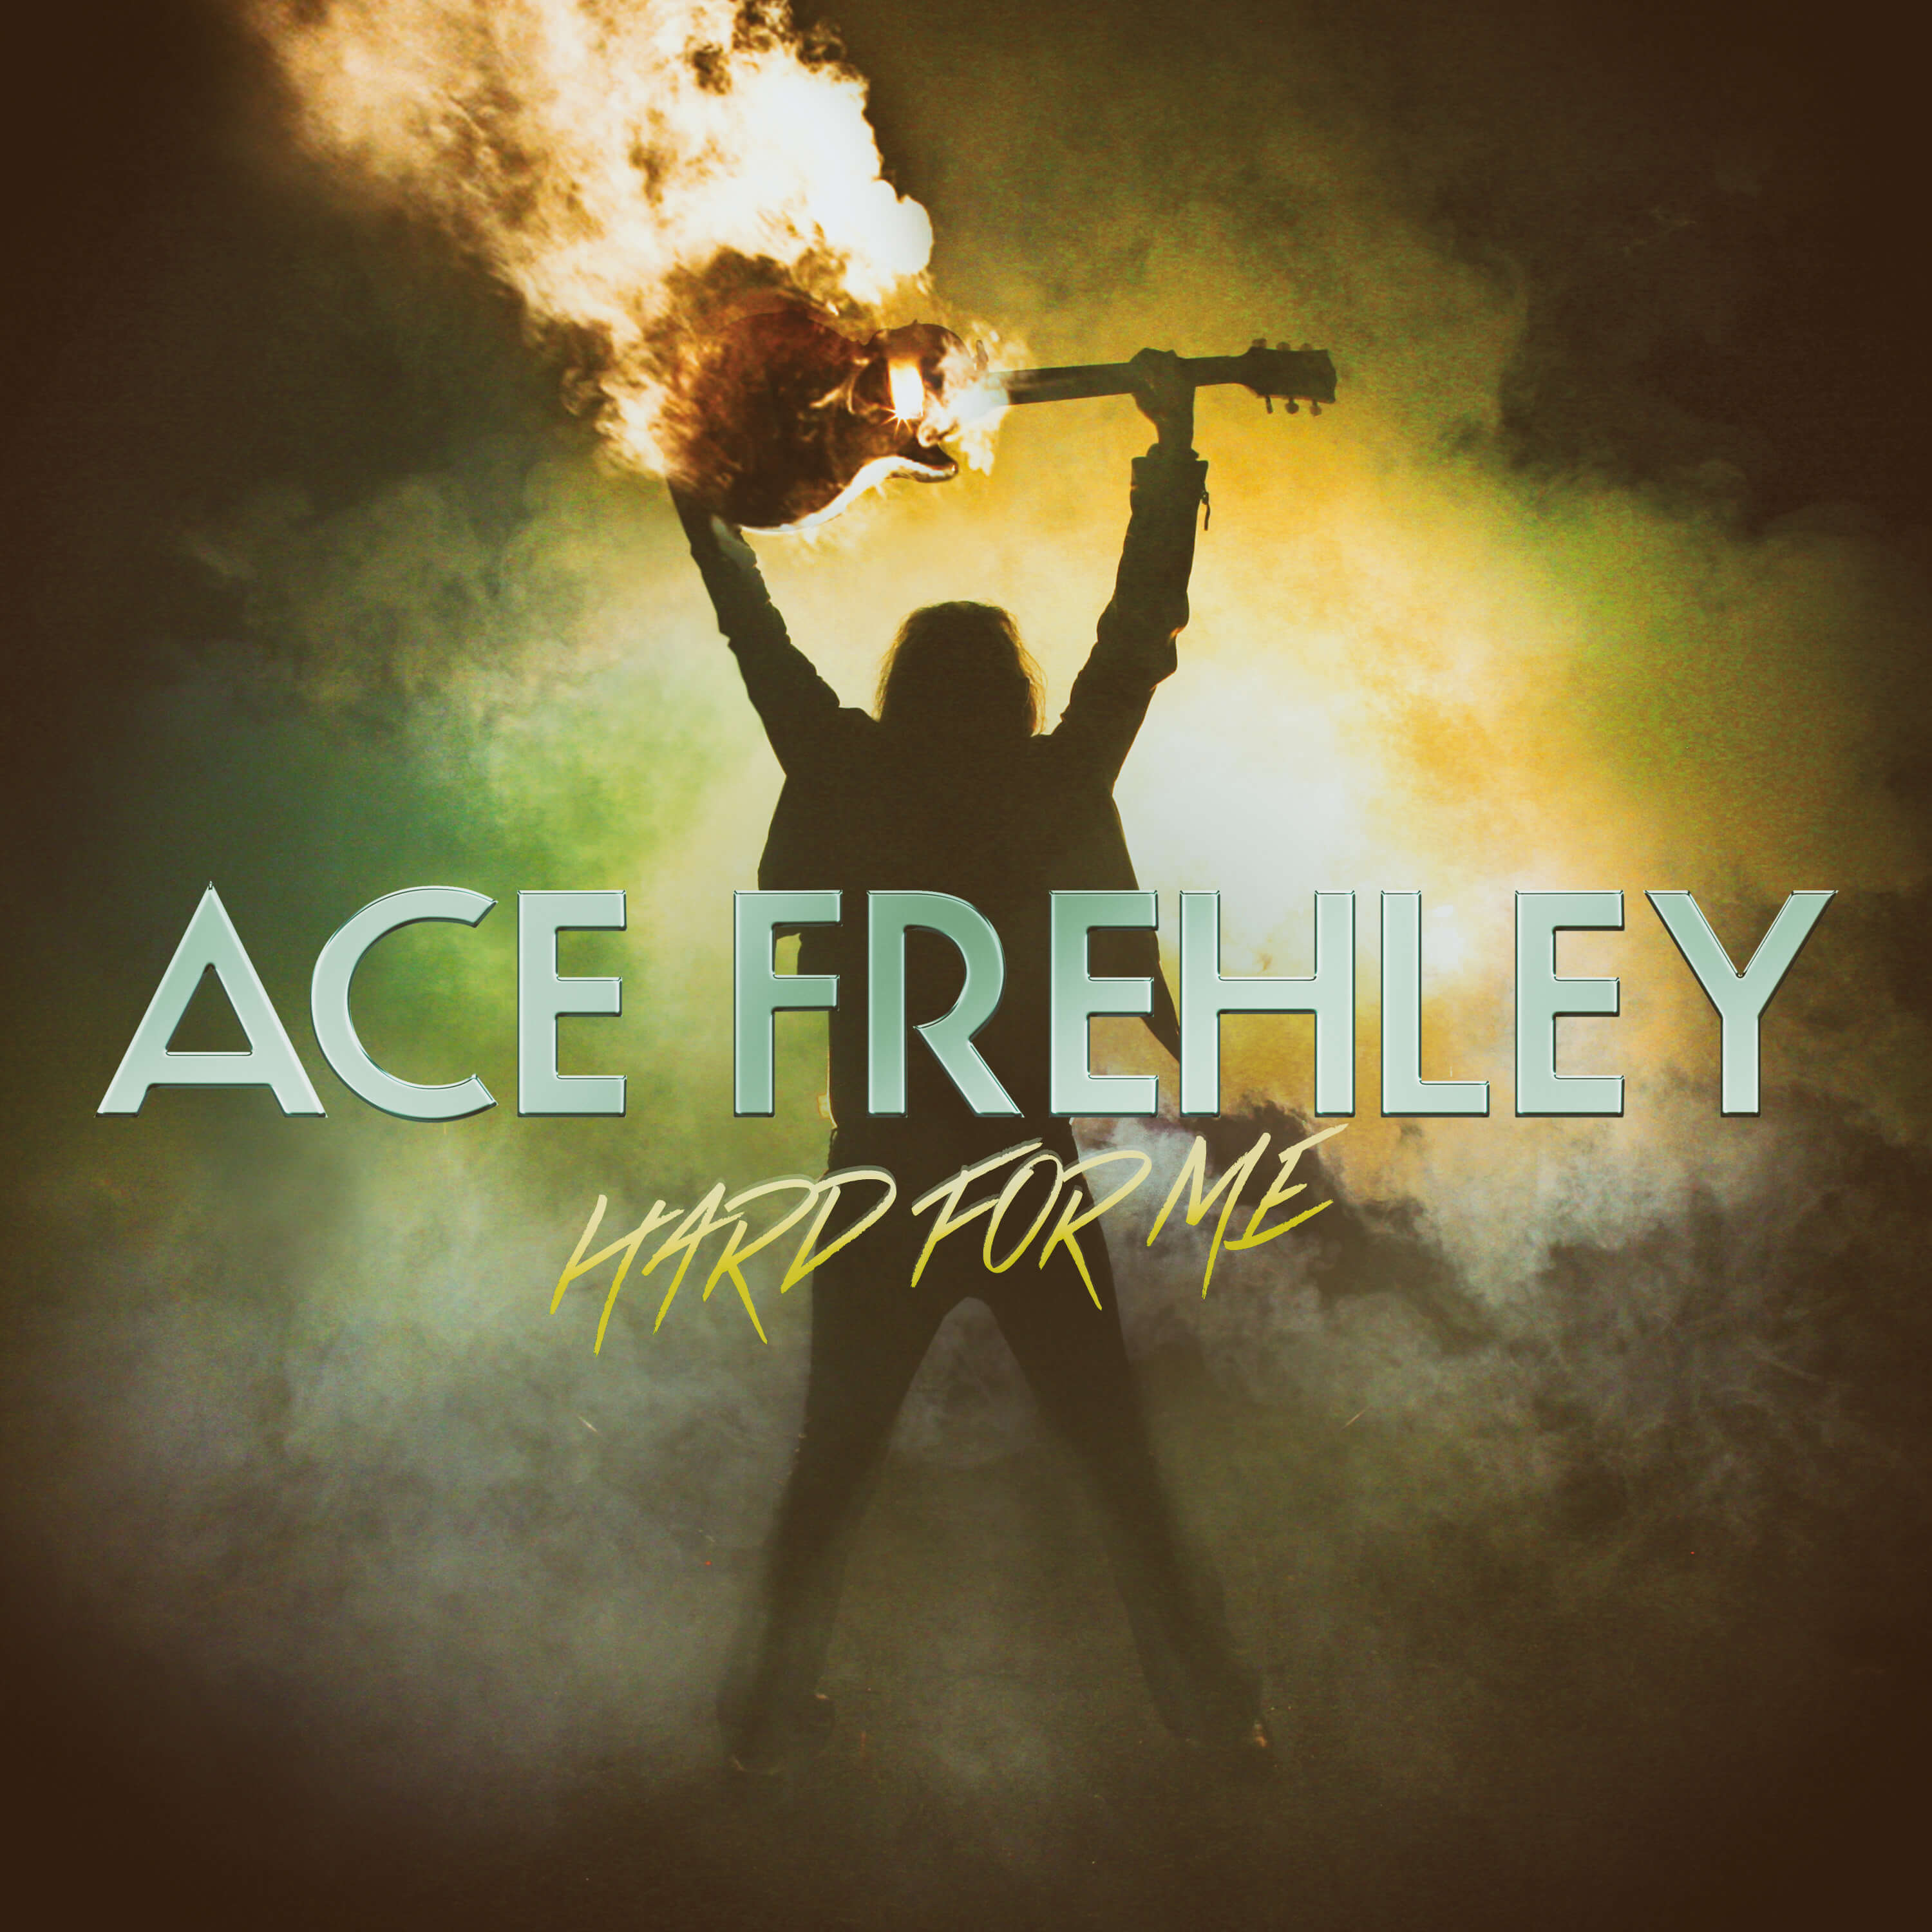 ACE FREHLEY : New single